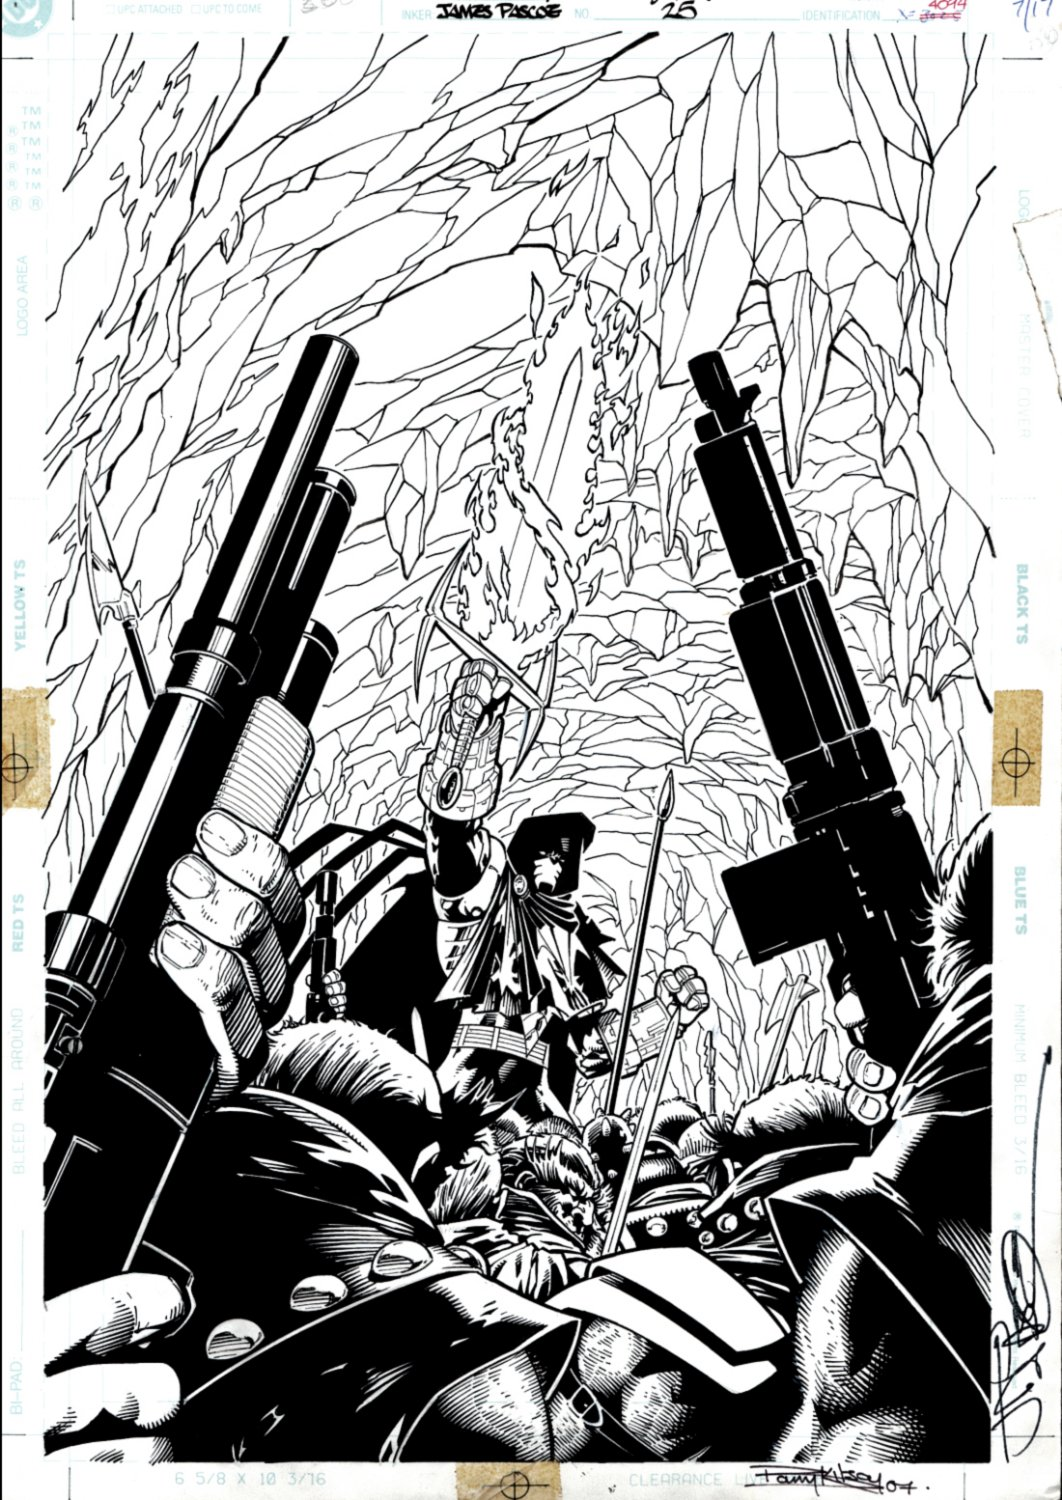 Azrael #25 Cover (SOLD LIVE ON THE ROMITAMAN ART DROP PODCAST ON 10-9-2021)